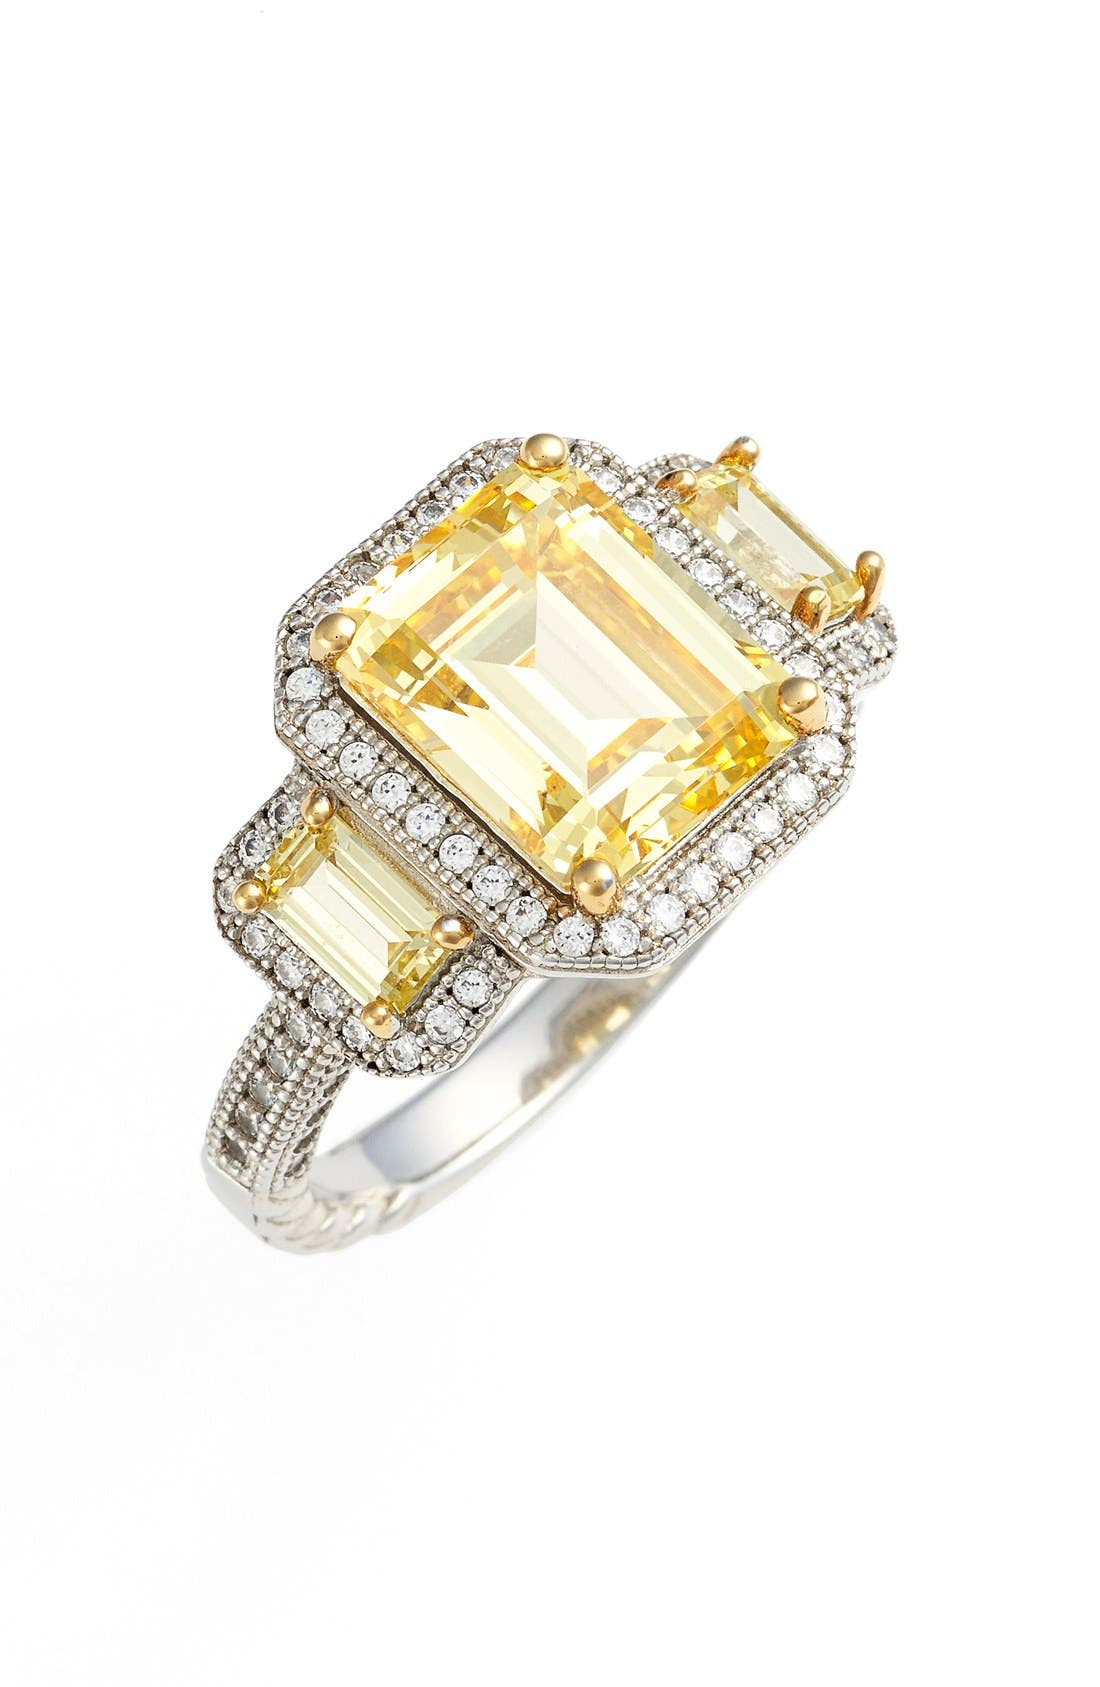 Main Image - Lafonn 'Lassaire' Yellow Three Stone Ring